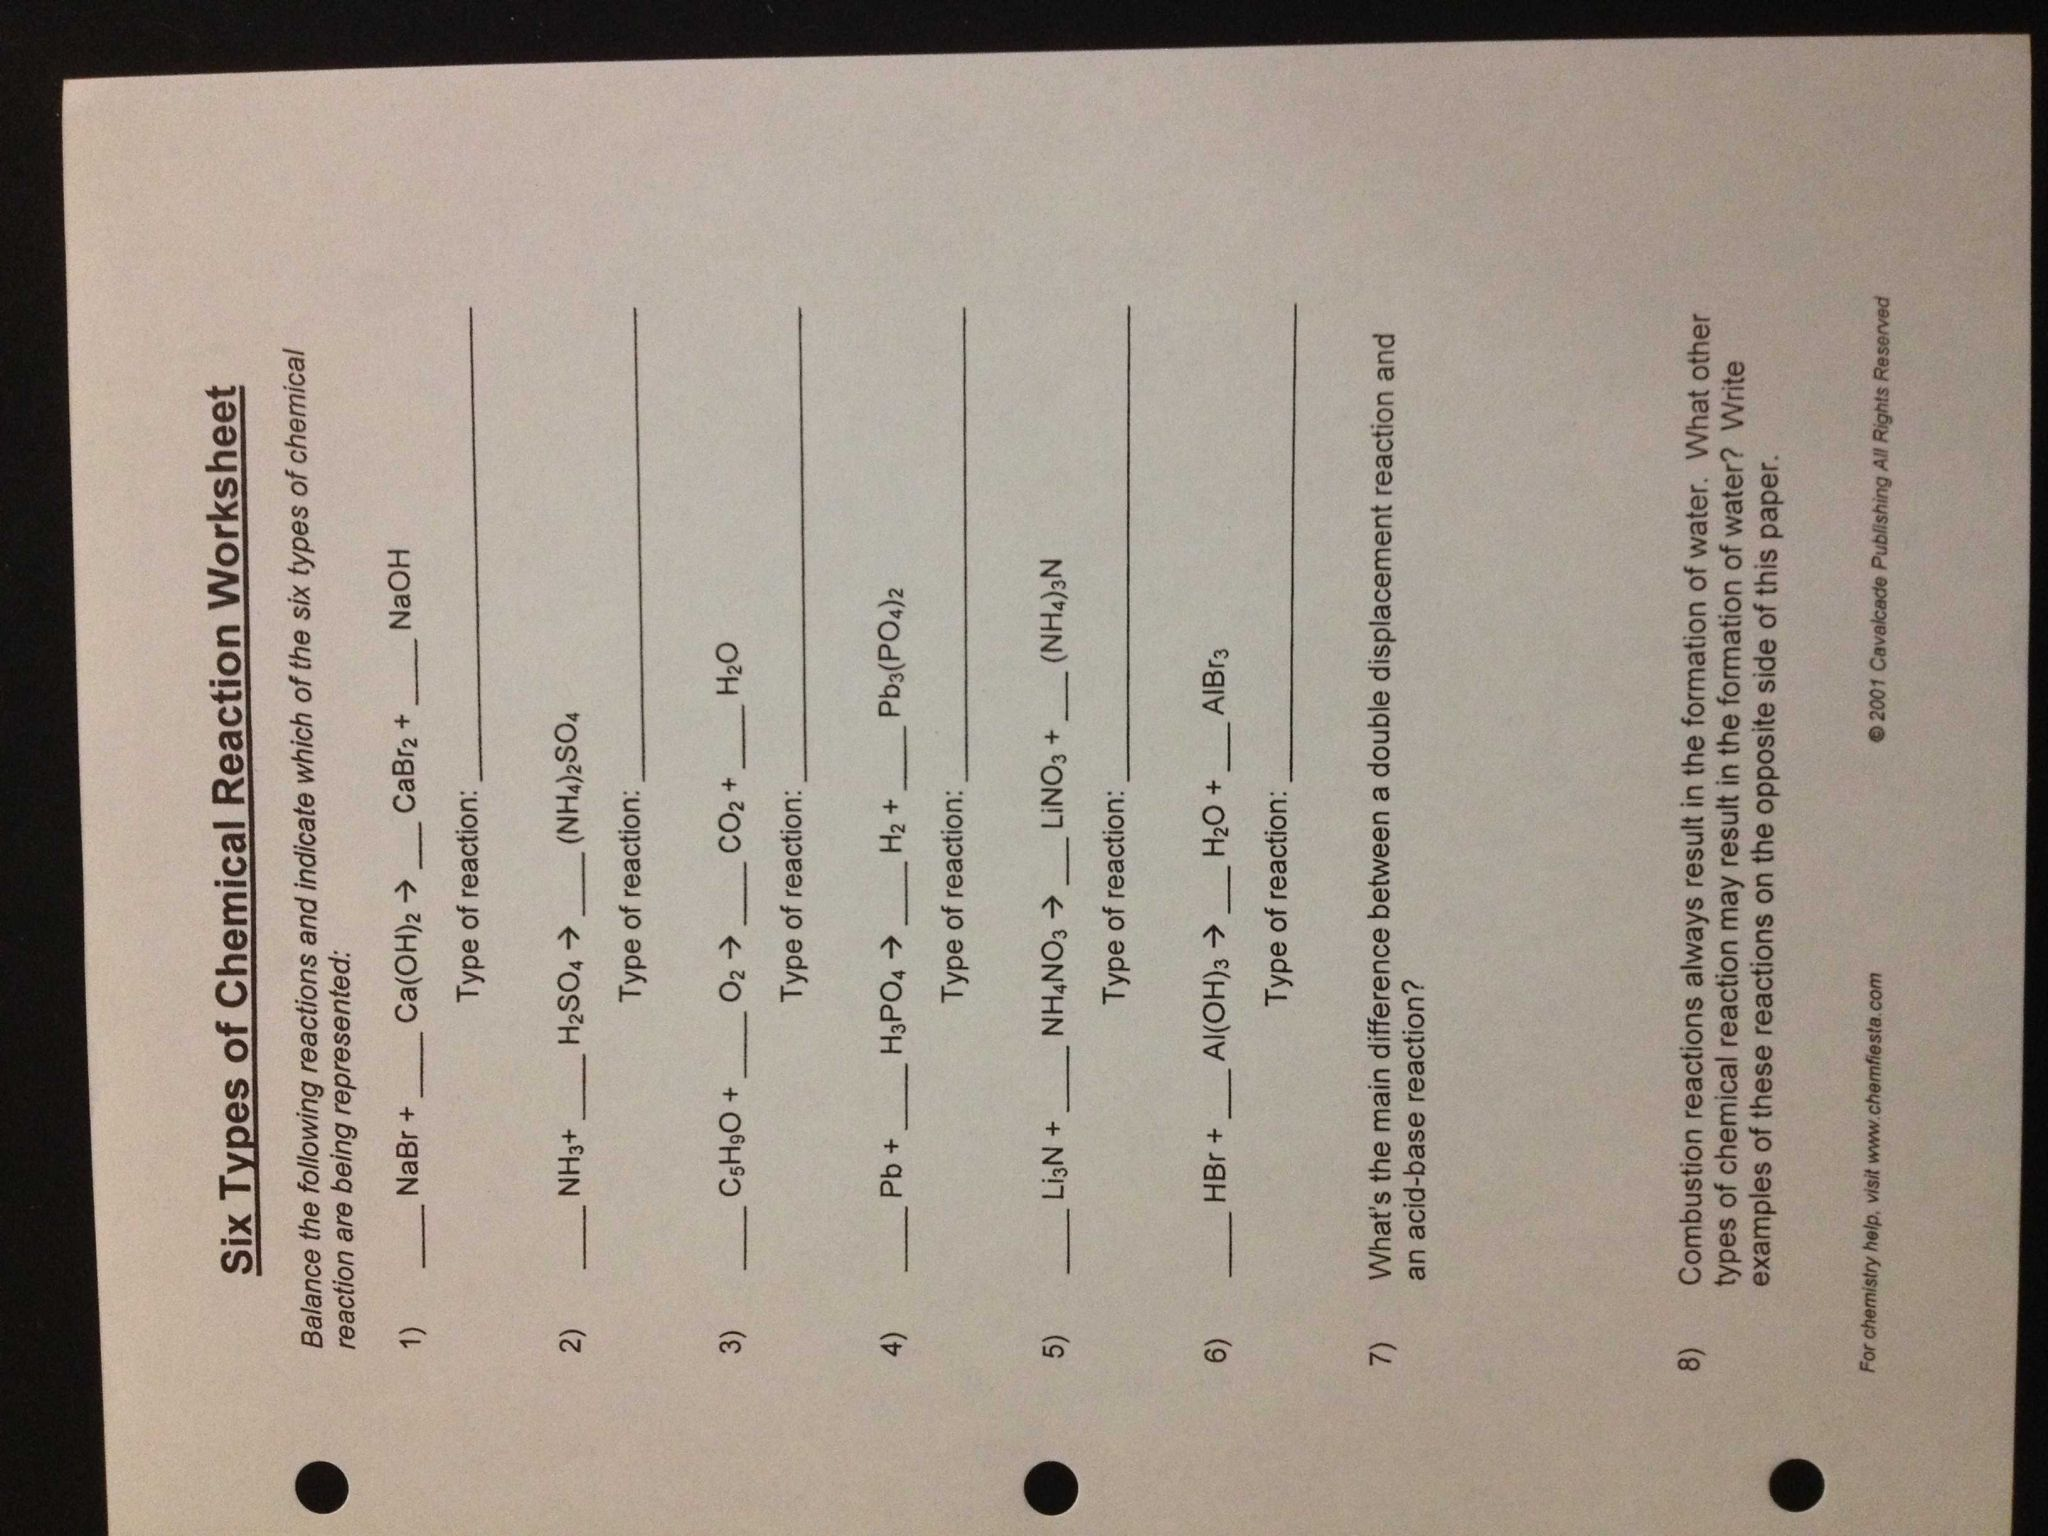 Balancing Chemical Reactions Worksheet Answers And